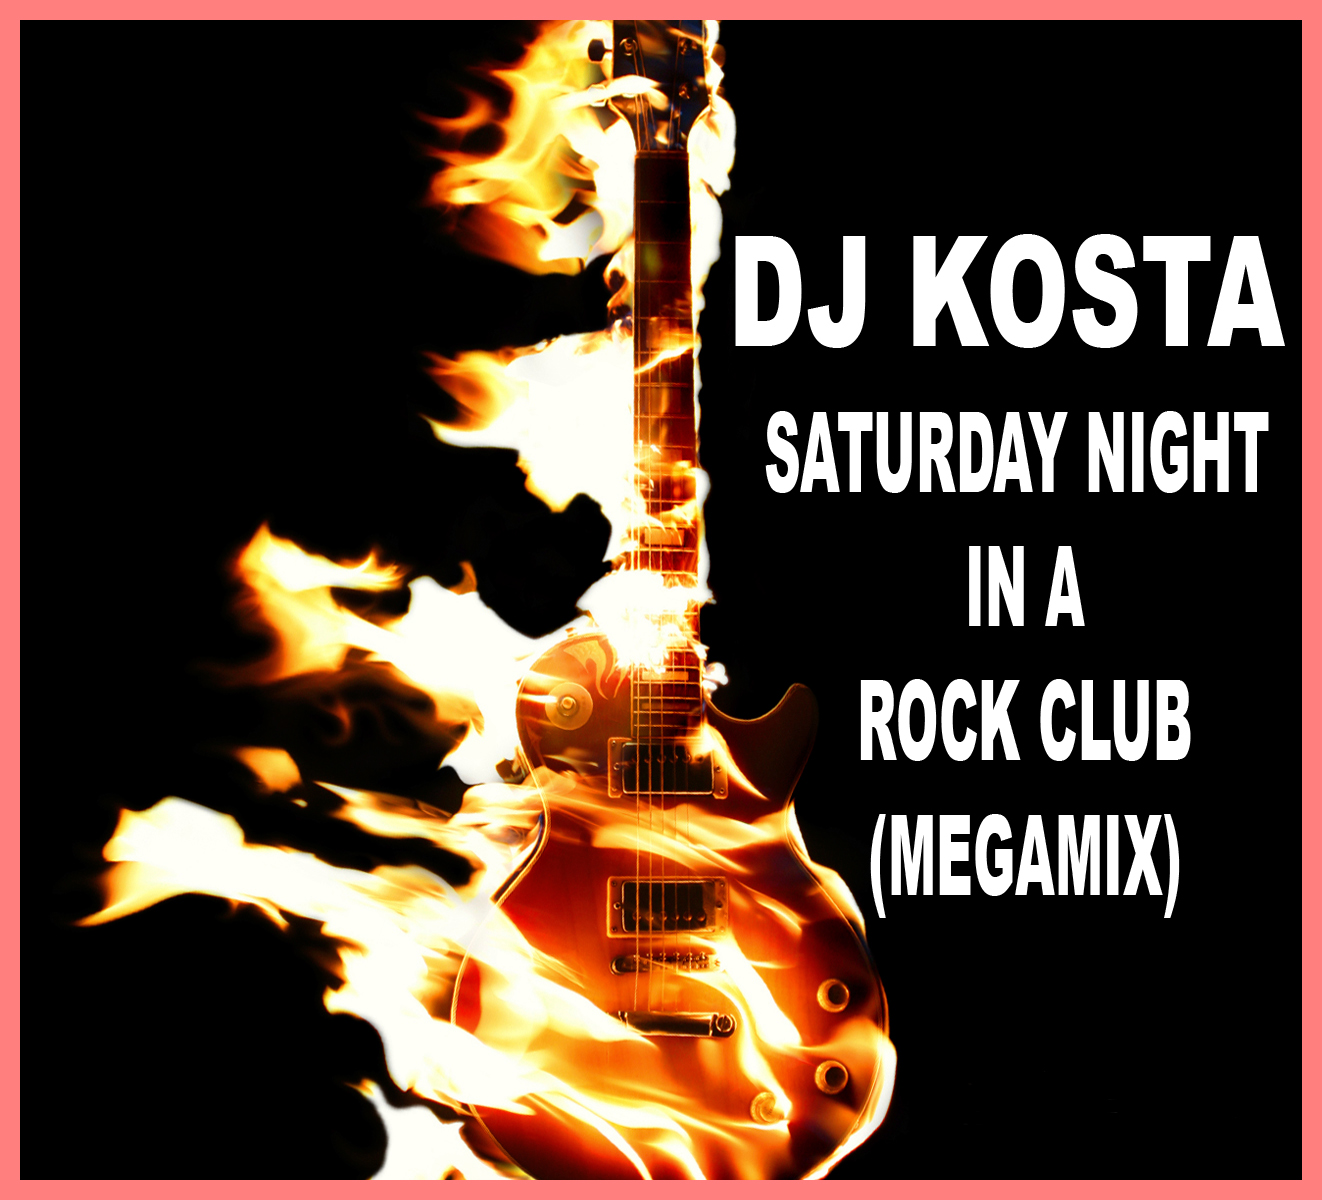 Cover Album of DJ Kosta - Saturday Night in a Rock Club Megamix 2010